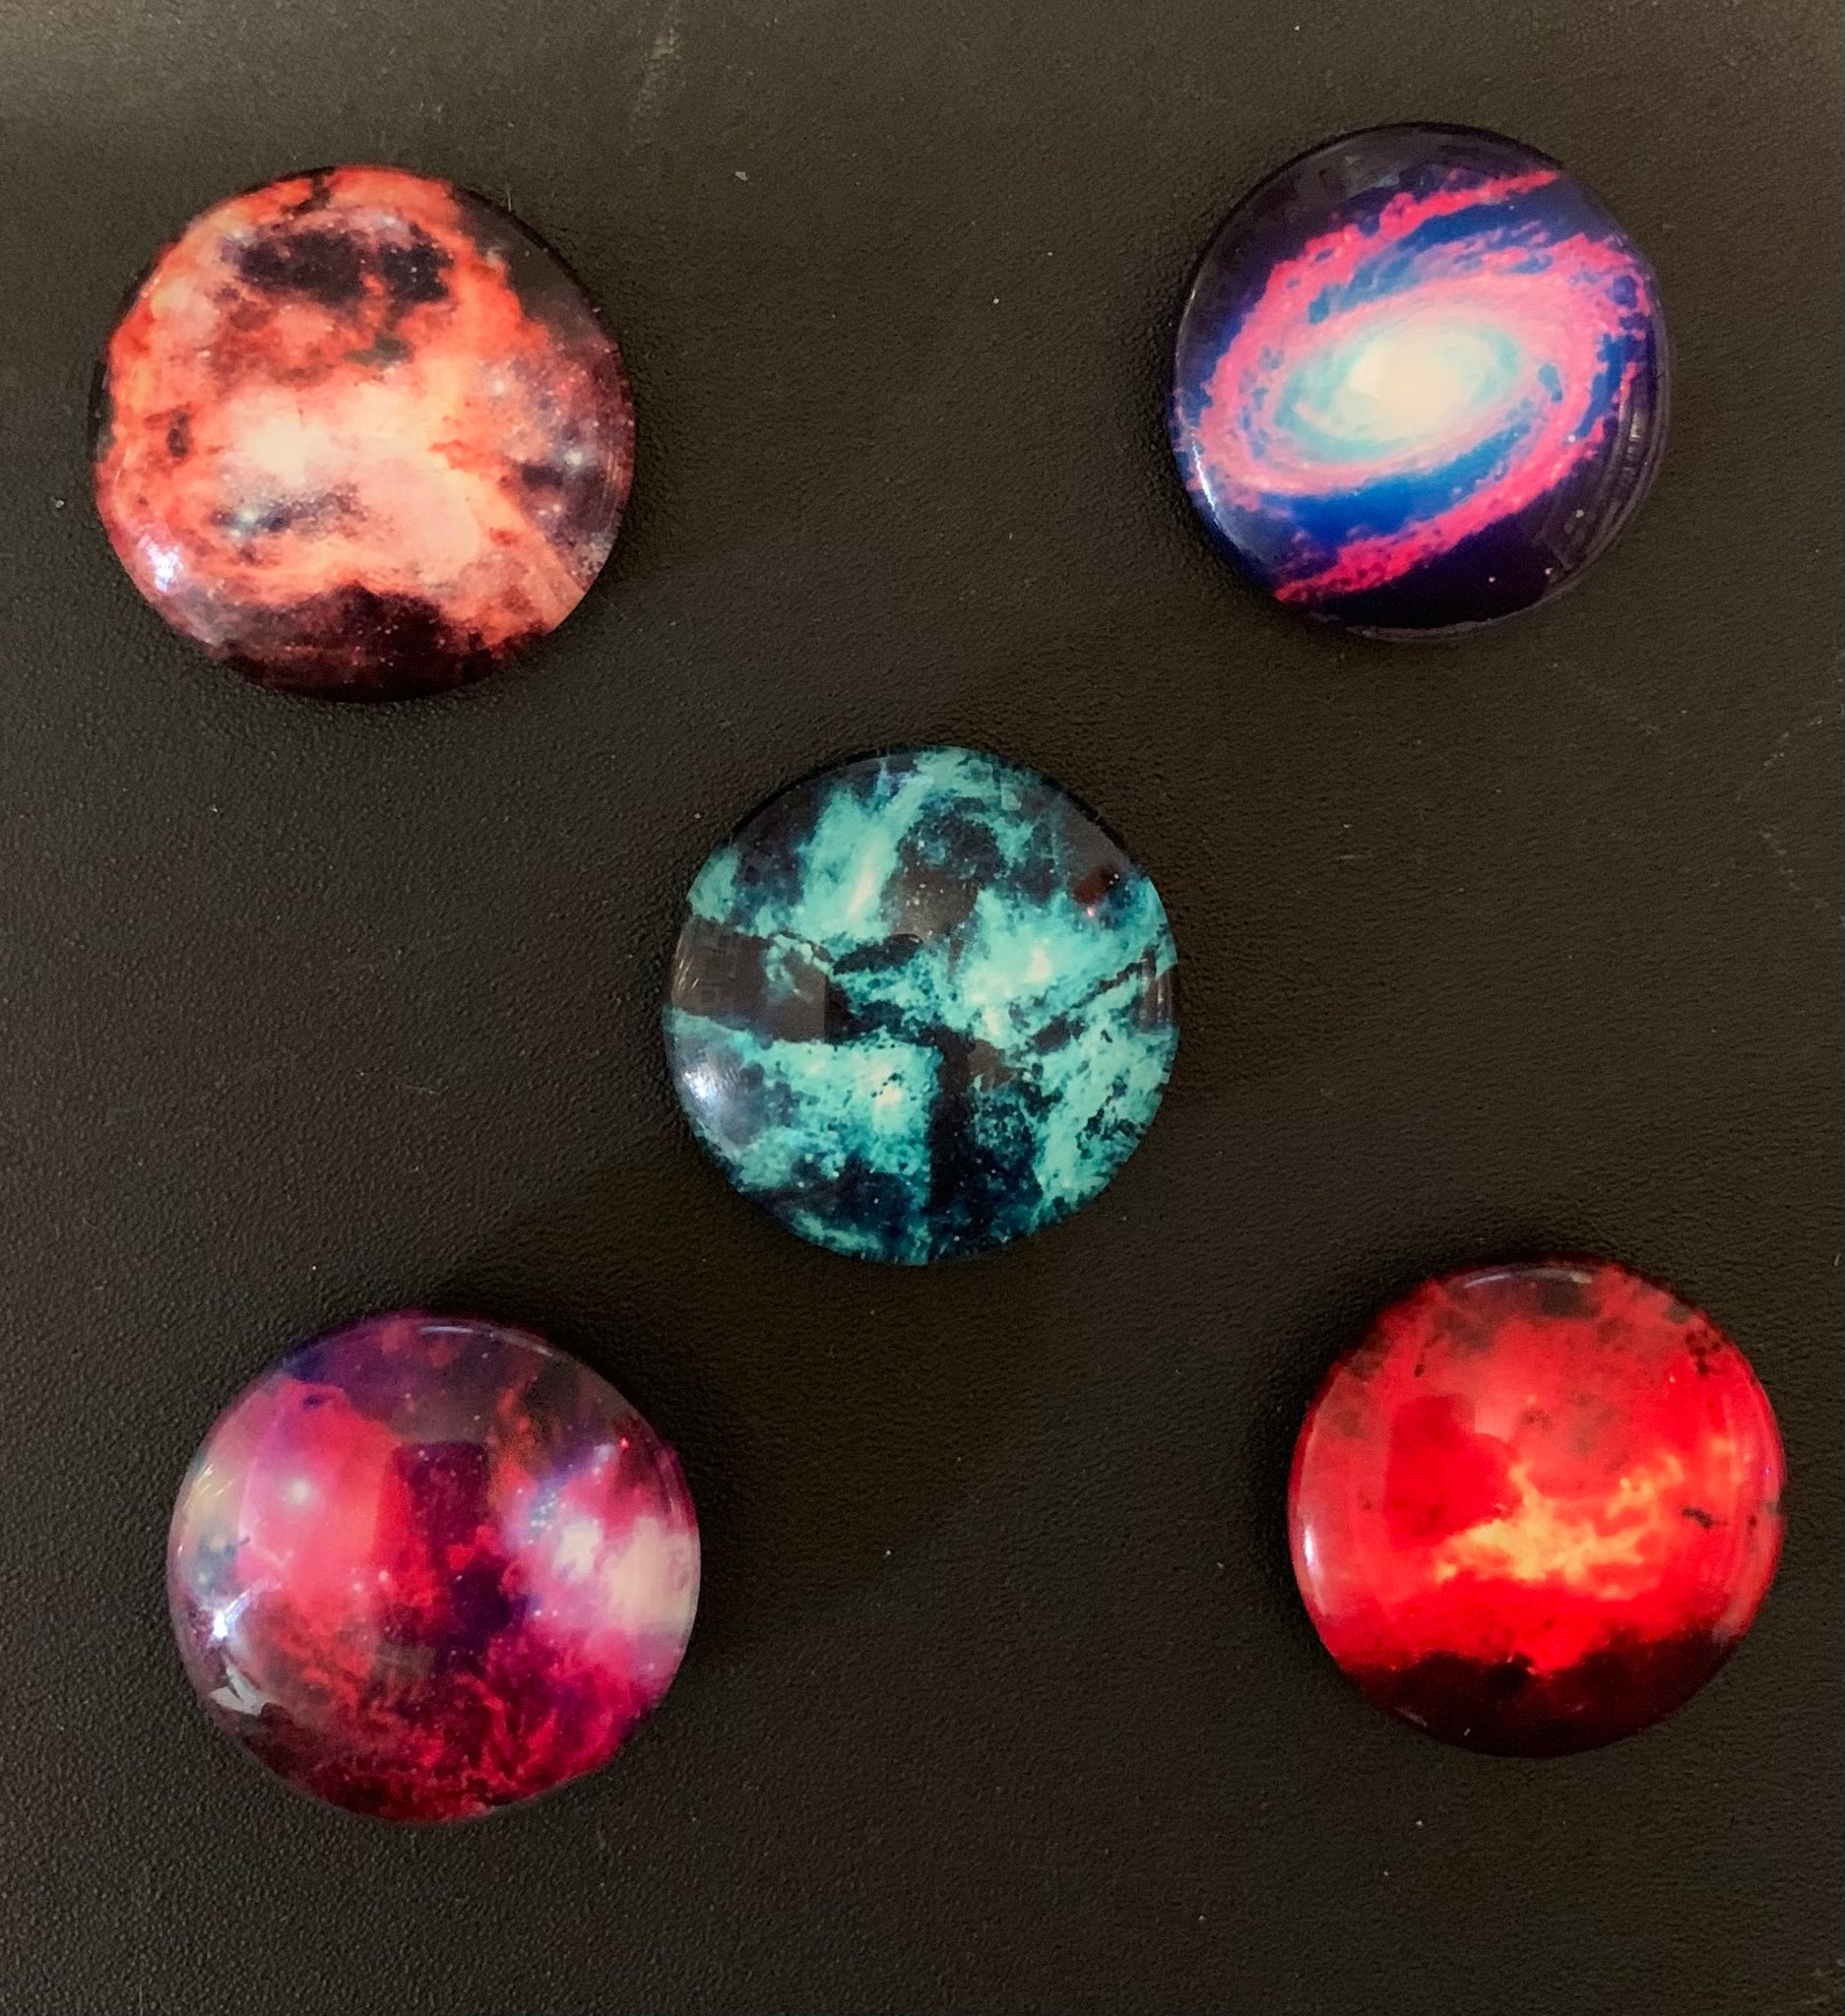 Handmade Galaxy Design #3 Glass Fridge/Memo Board Magnets (set of 5)